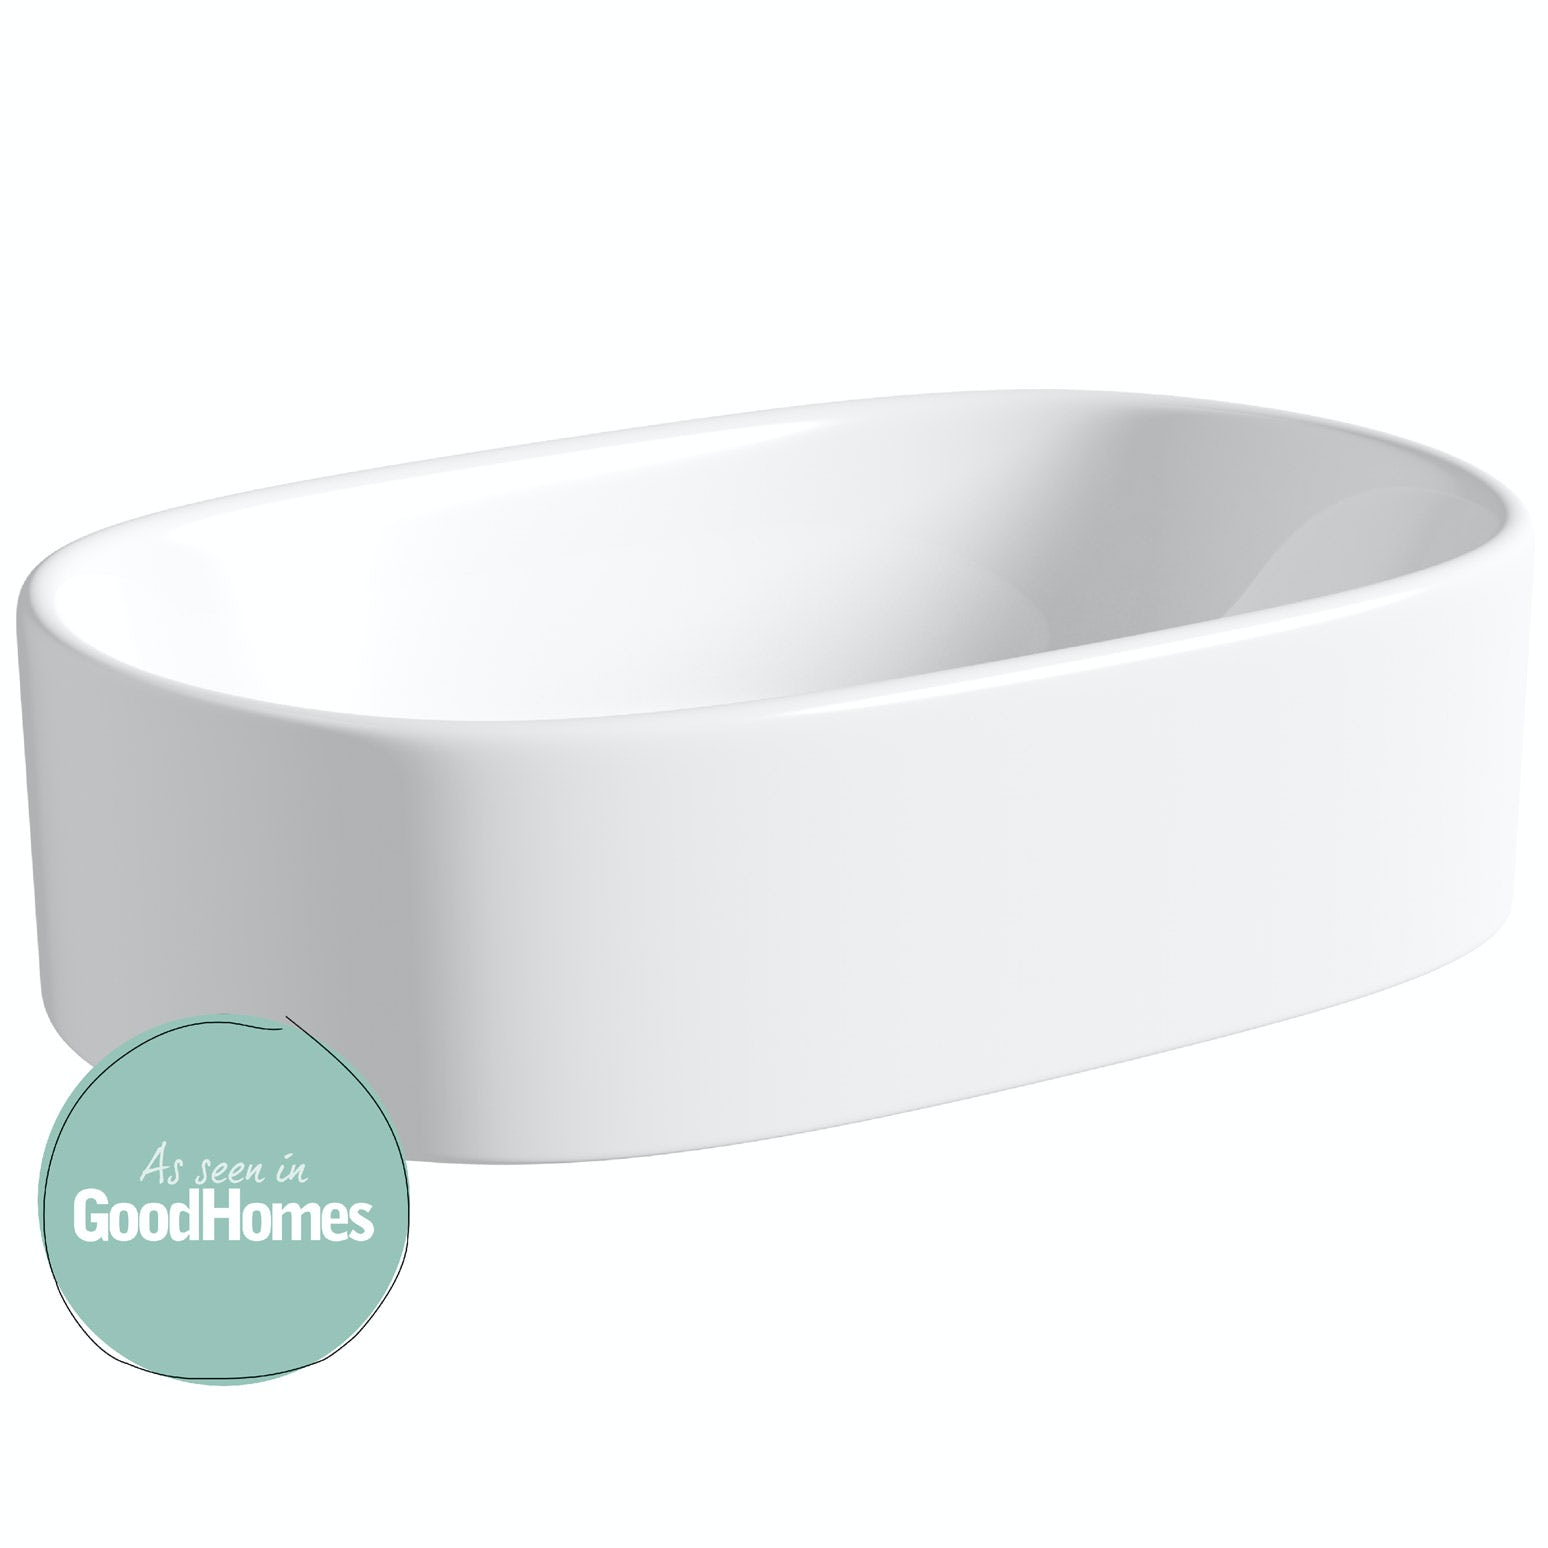 Tate counter top basin